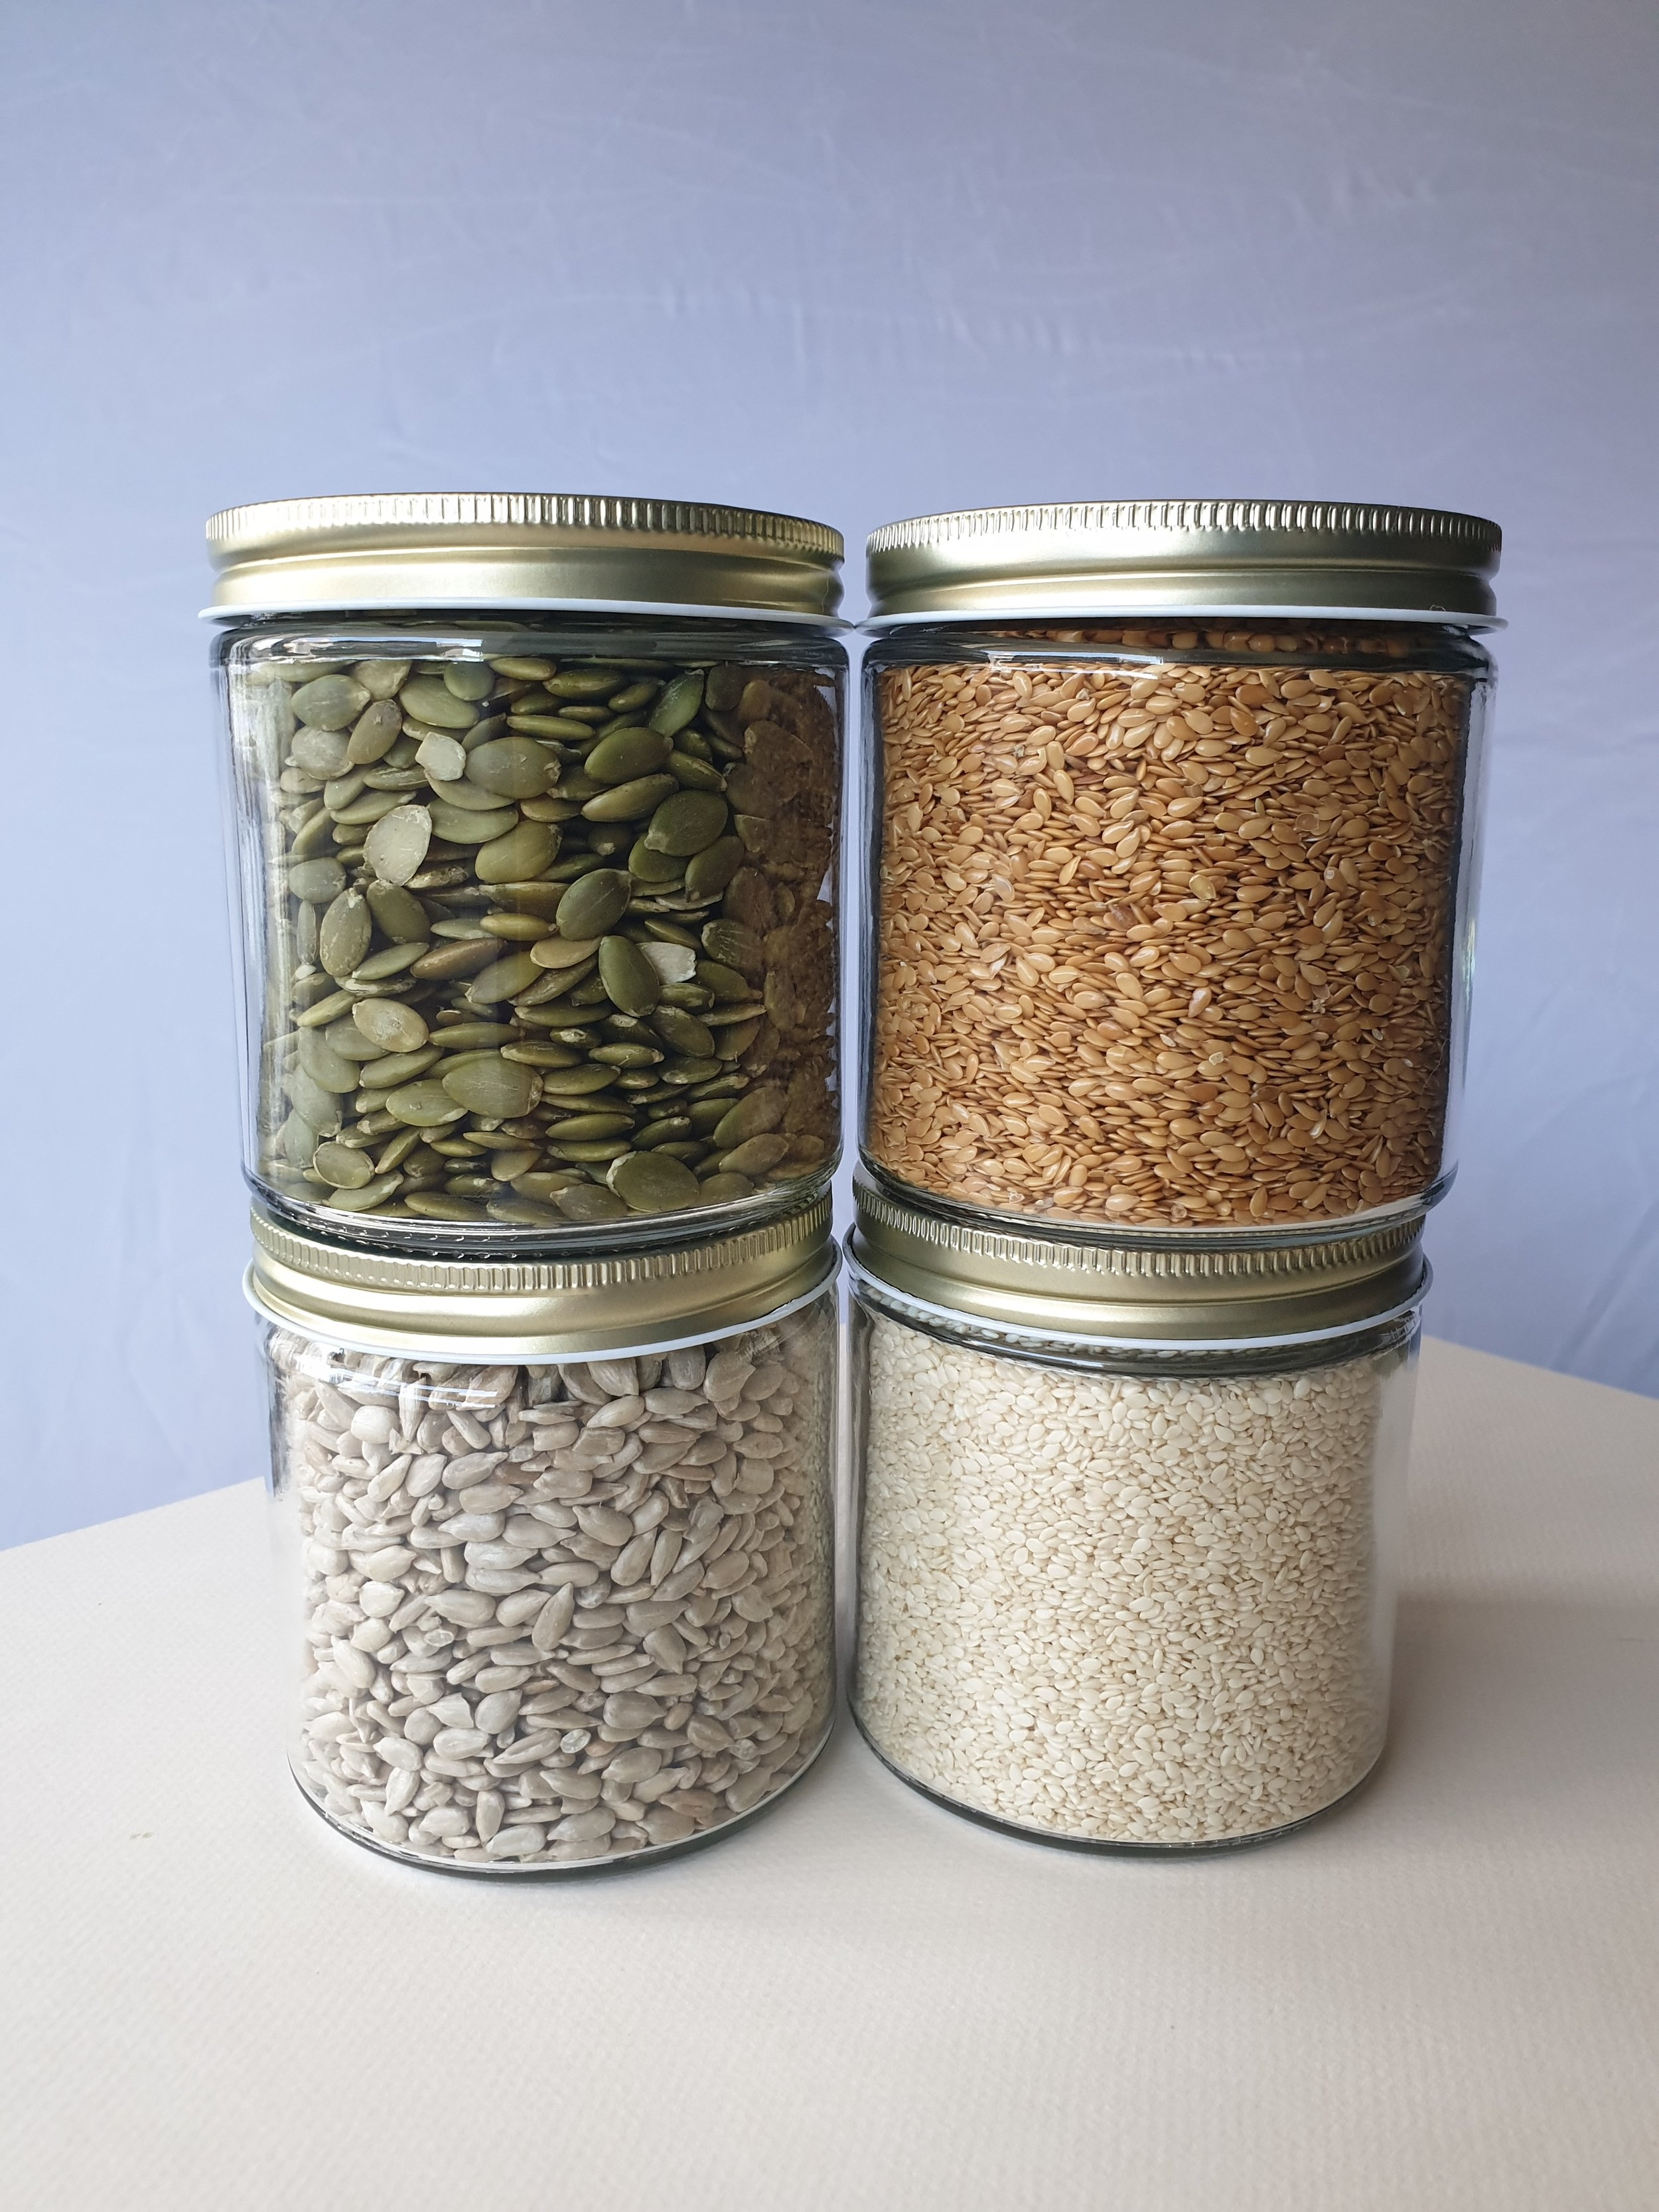 Clockwise direction: Raw pumpkin seeds, raw flaxseeds, raw white sesame seeds and raw hulled sunflower seeds